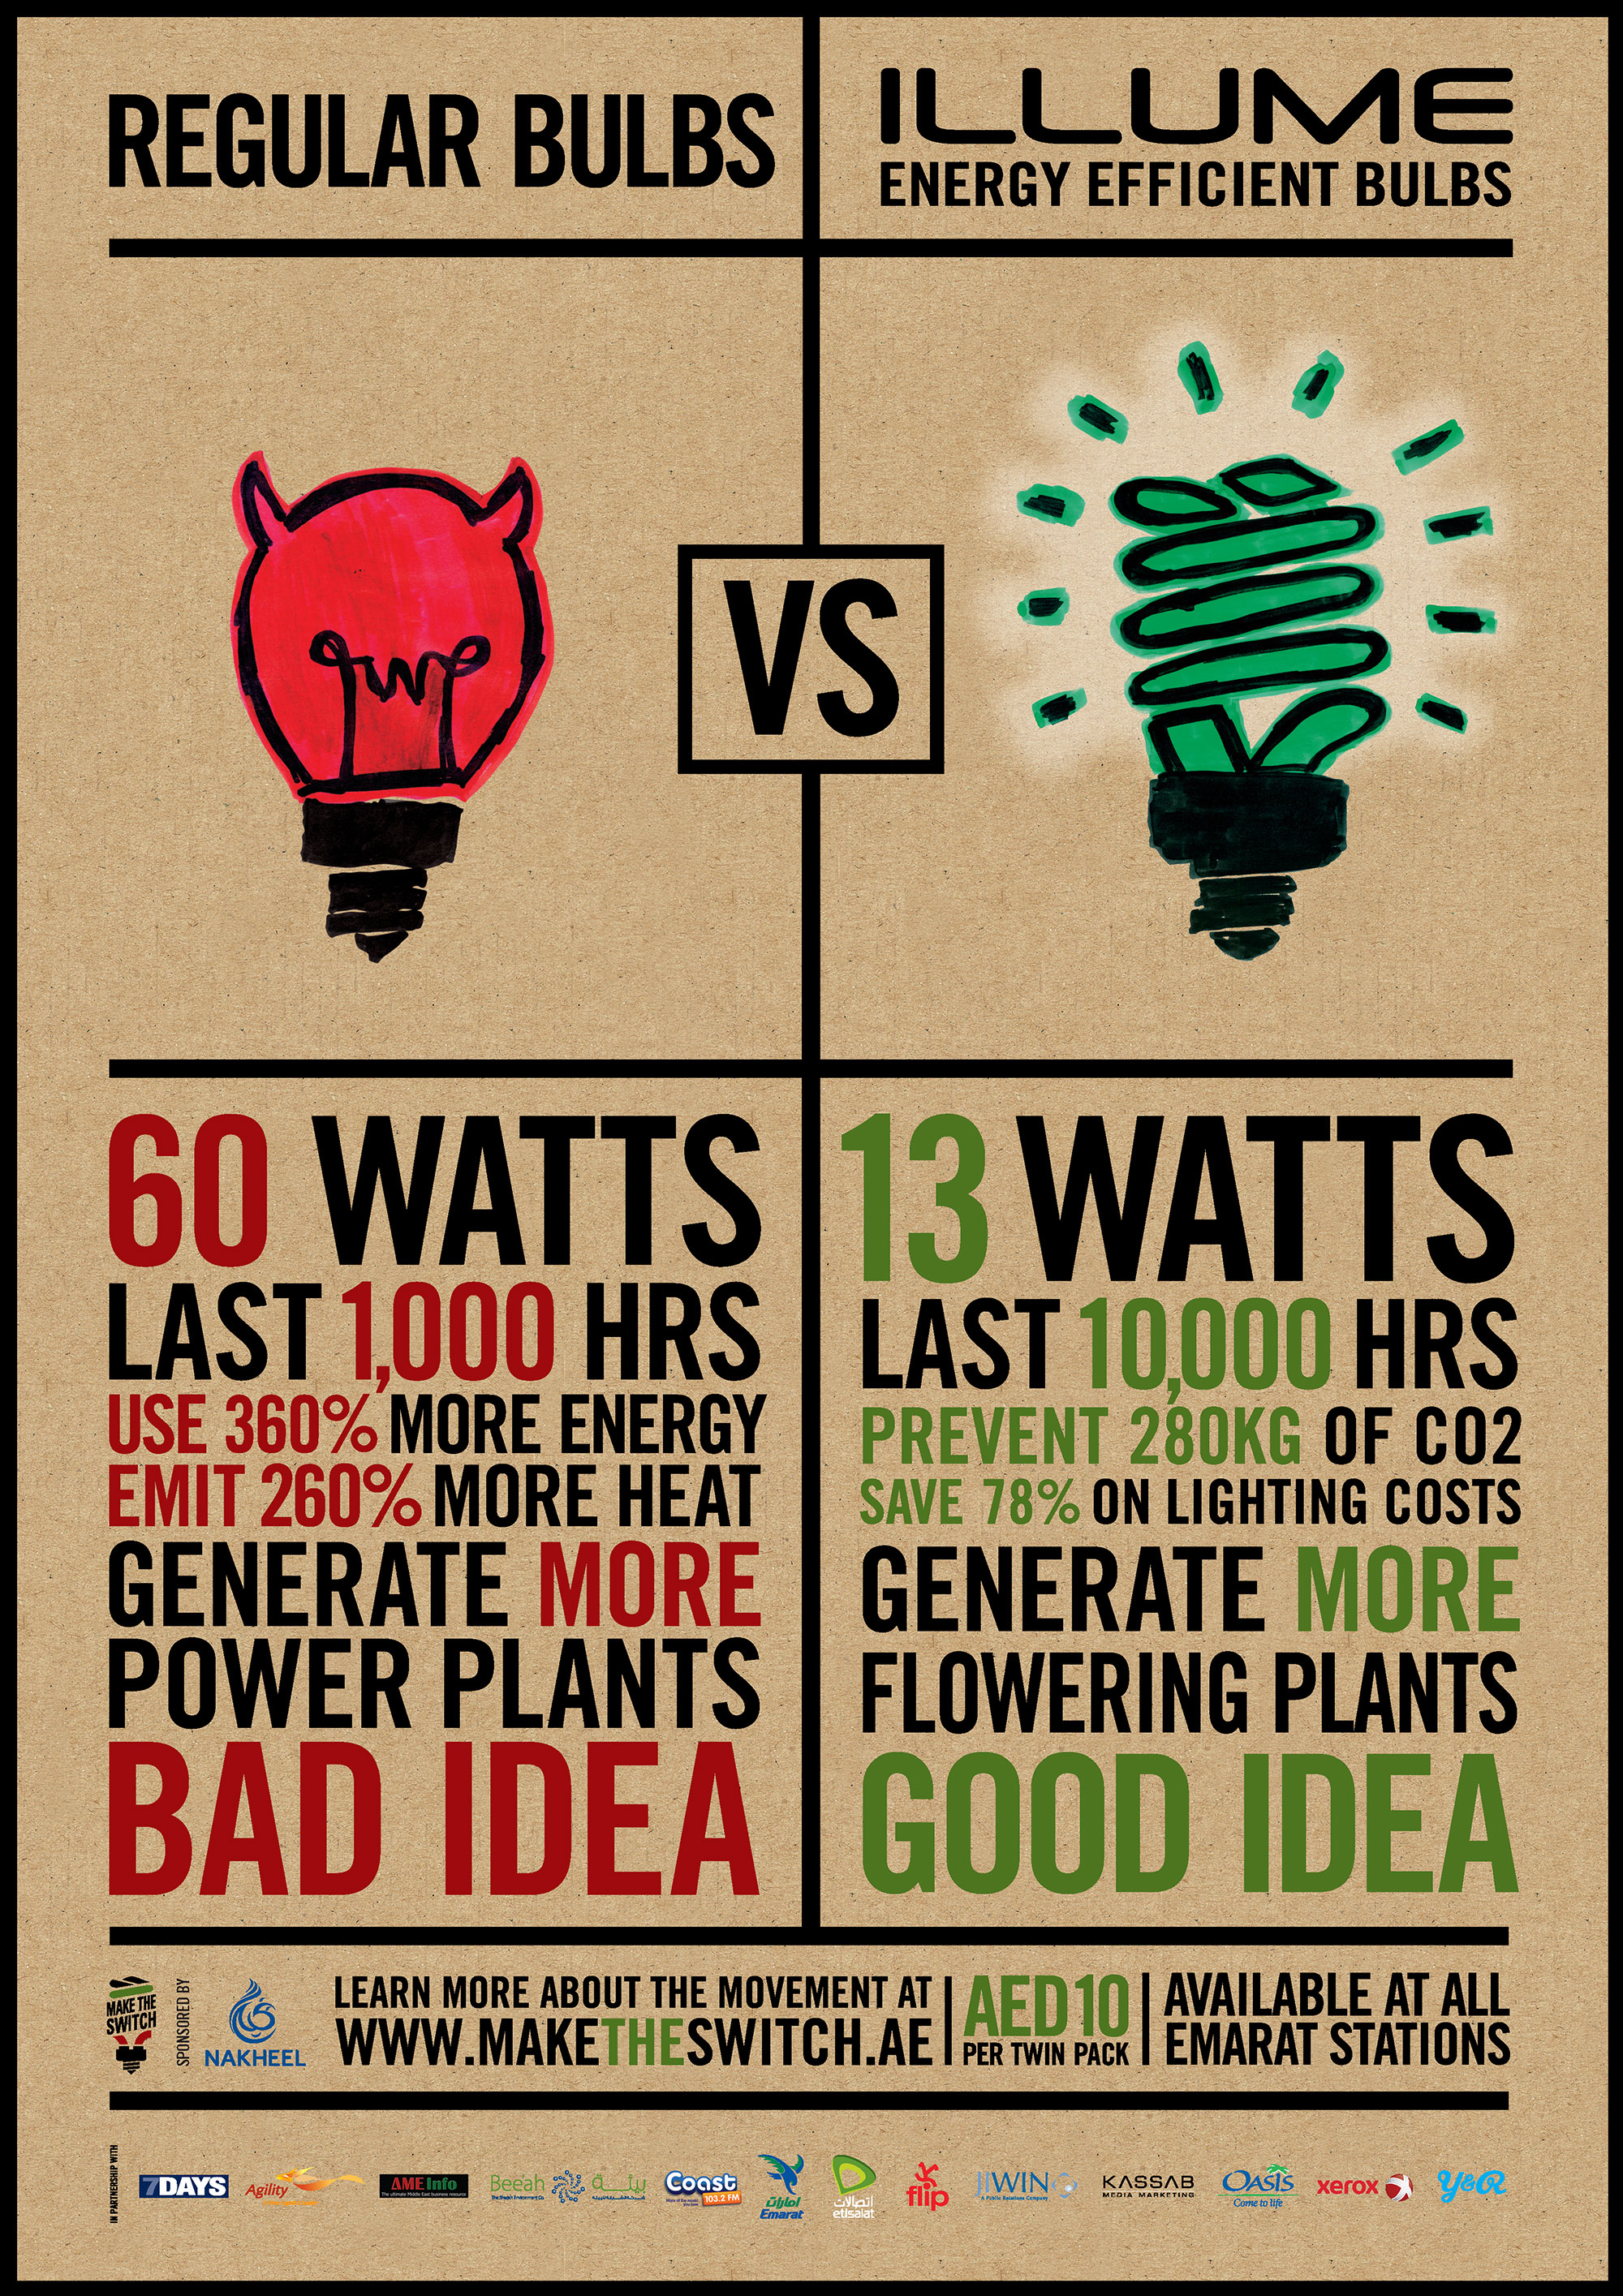 An integrated campaign revolved on the 'Good Idea VS Bad Idea' where every person is made to ponder and hopefully will make the switch.